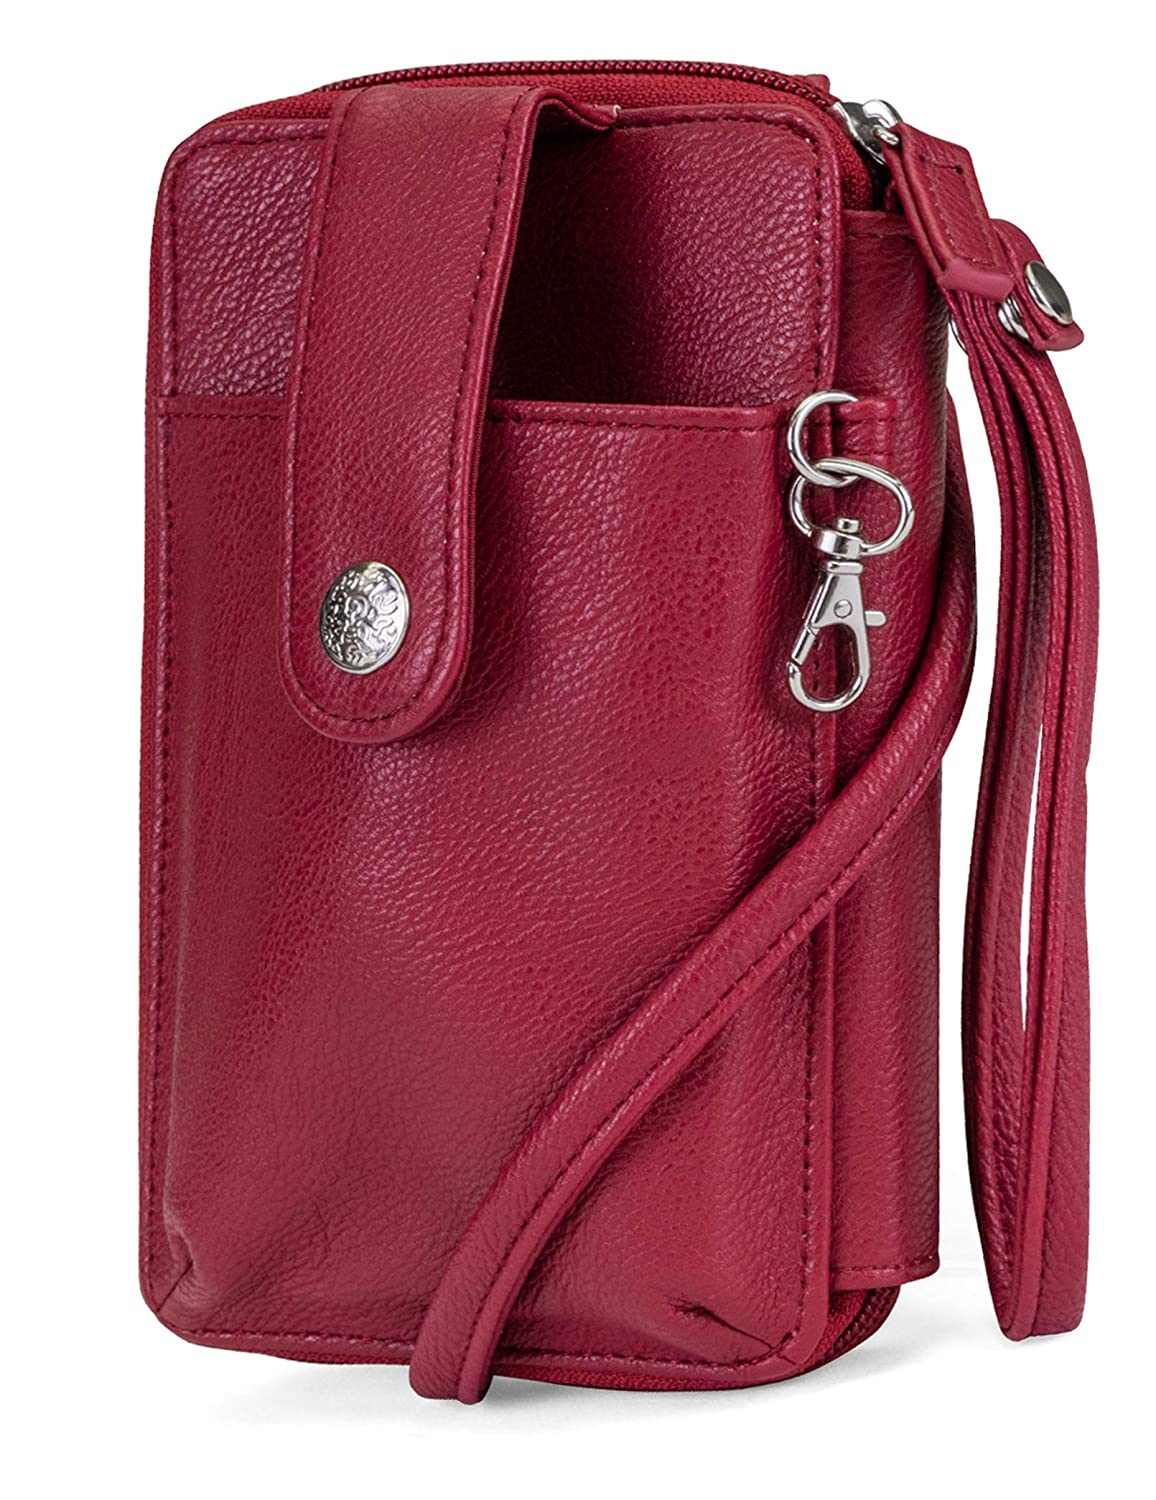 (Red) MUNDI Jacqui Vegan Leather RFID Womens Crossbody Cell Phone Purse Holder Wallet